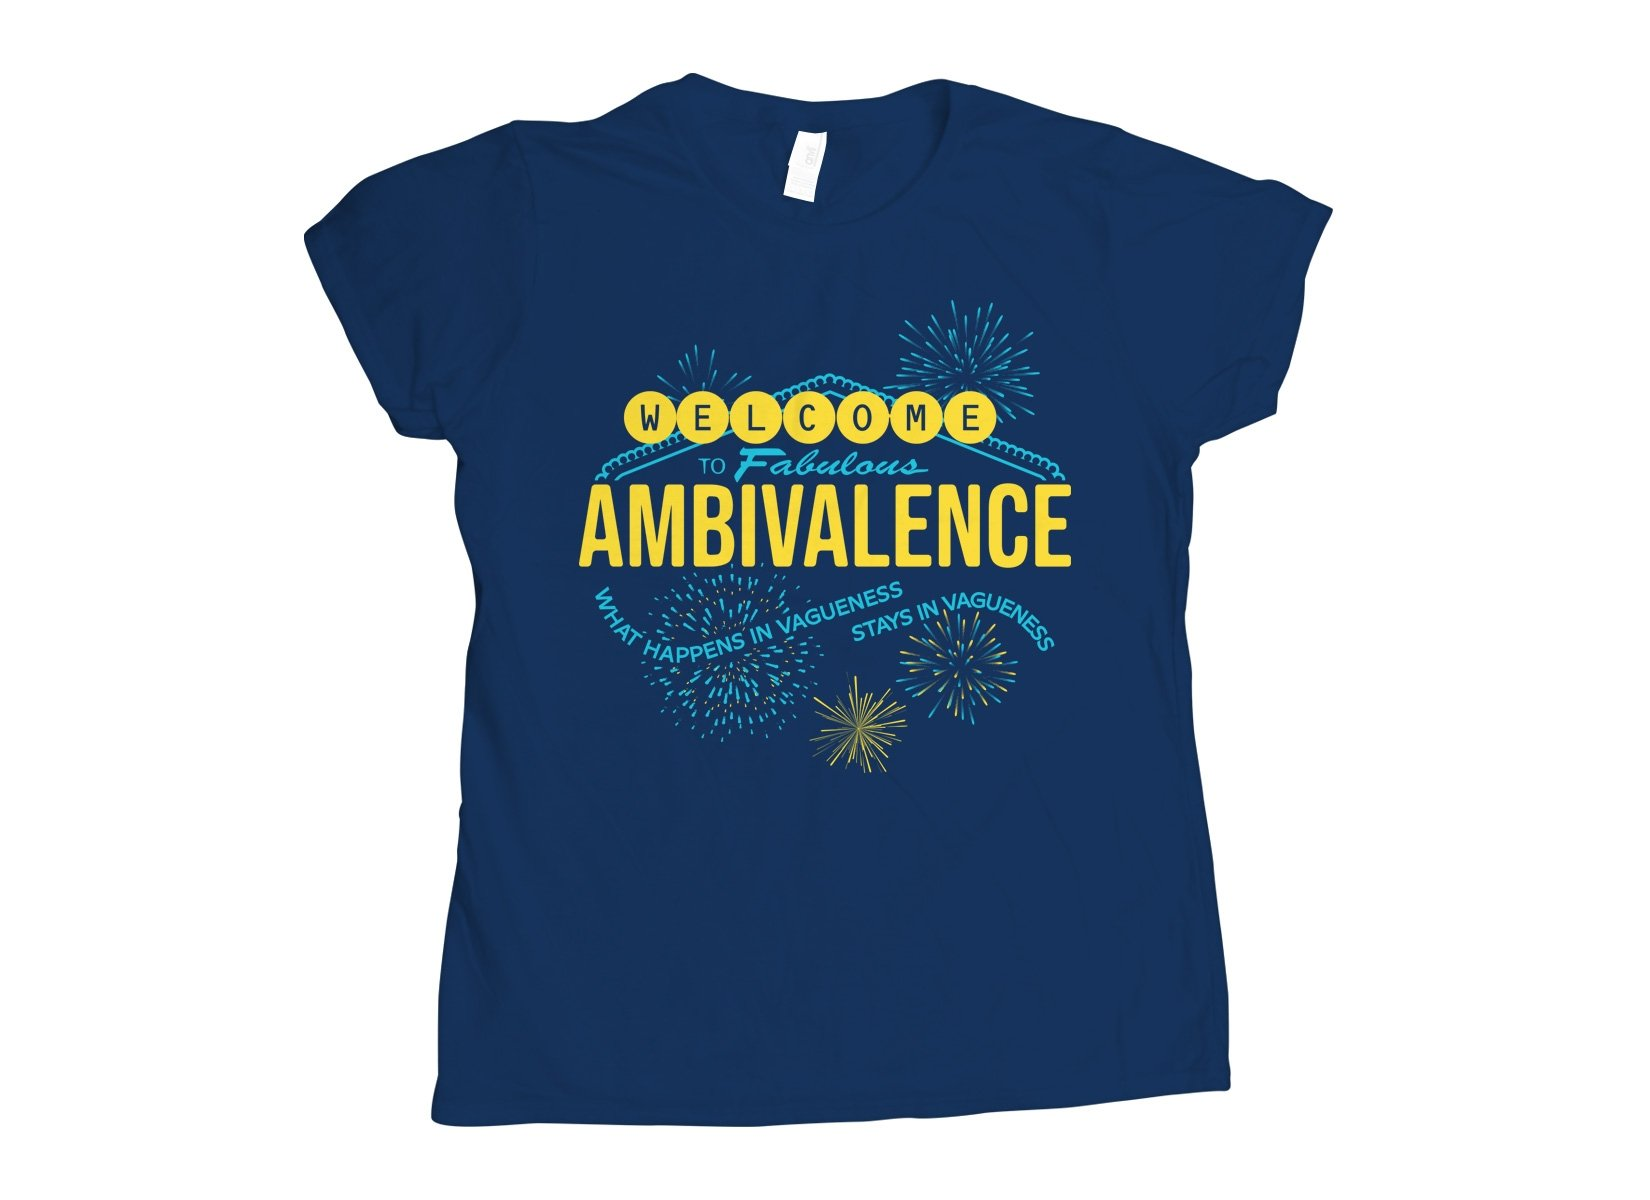 Welcome To Fabulous Ambivalence on Womens T-Shirt